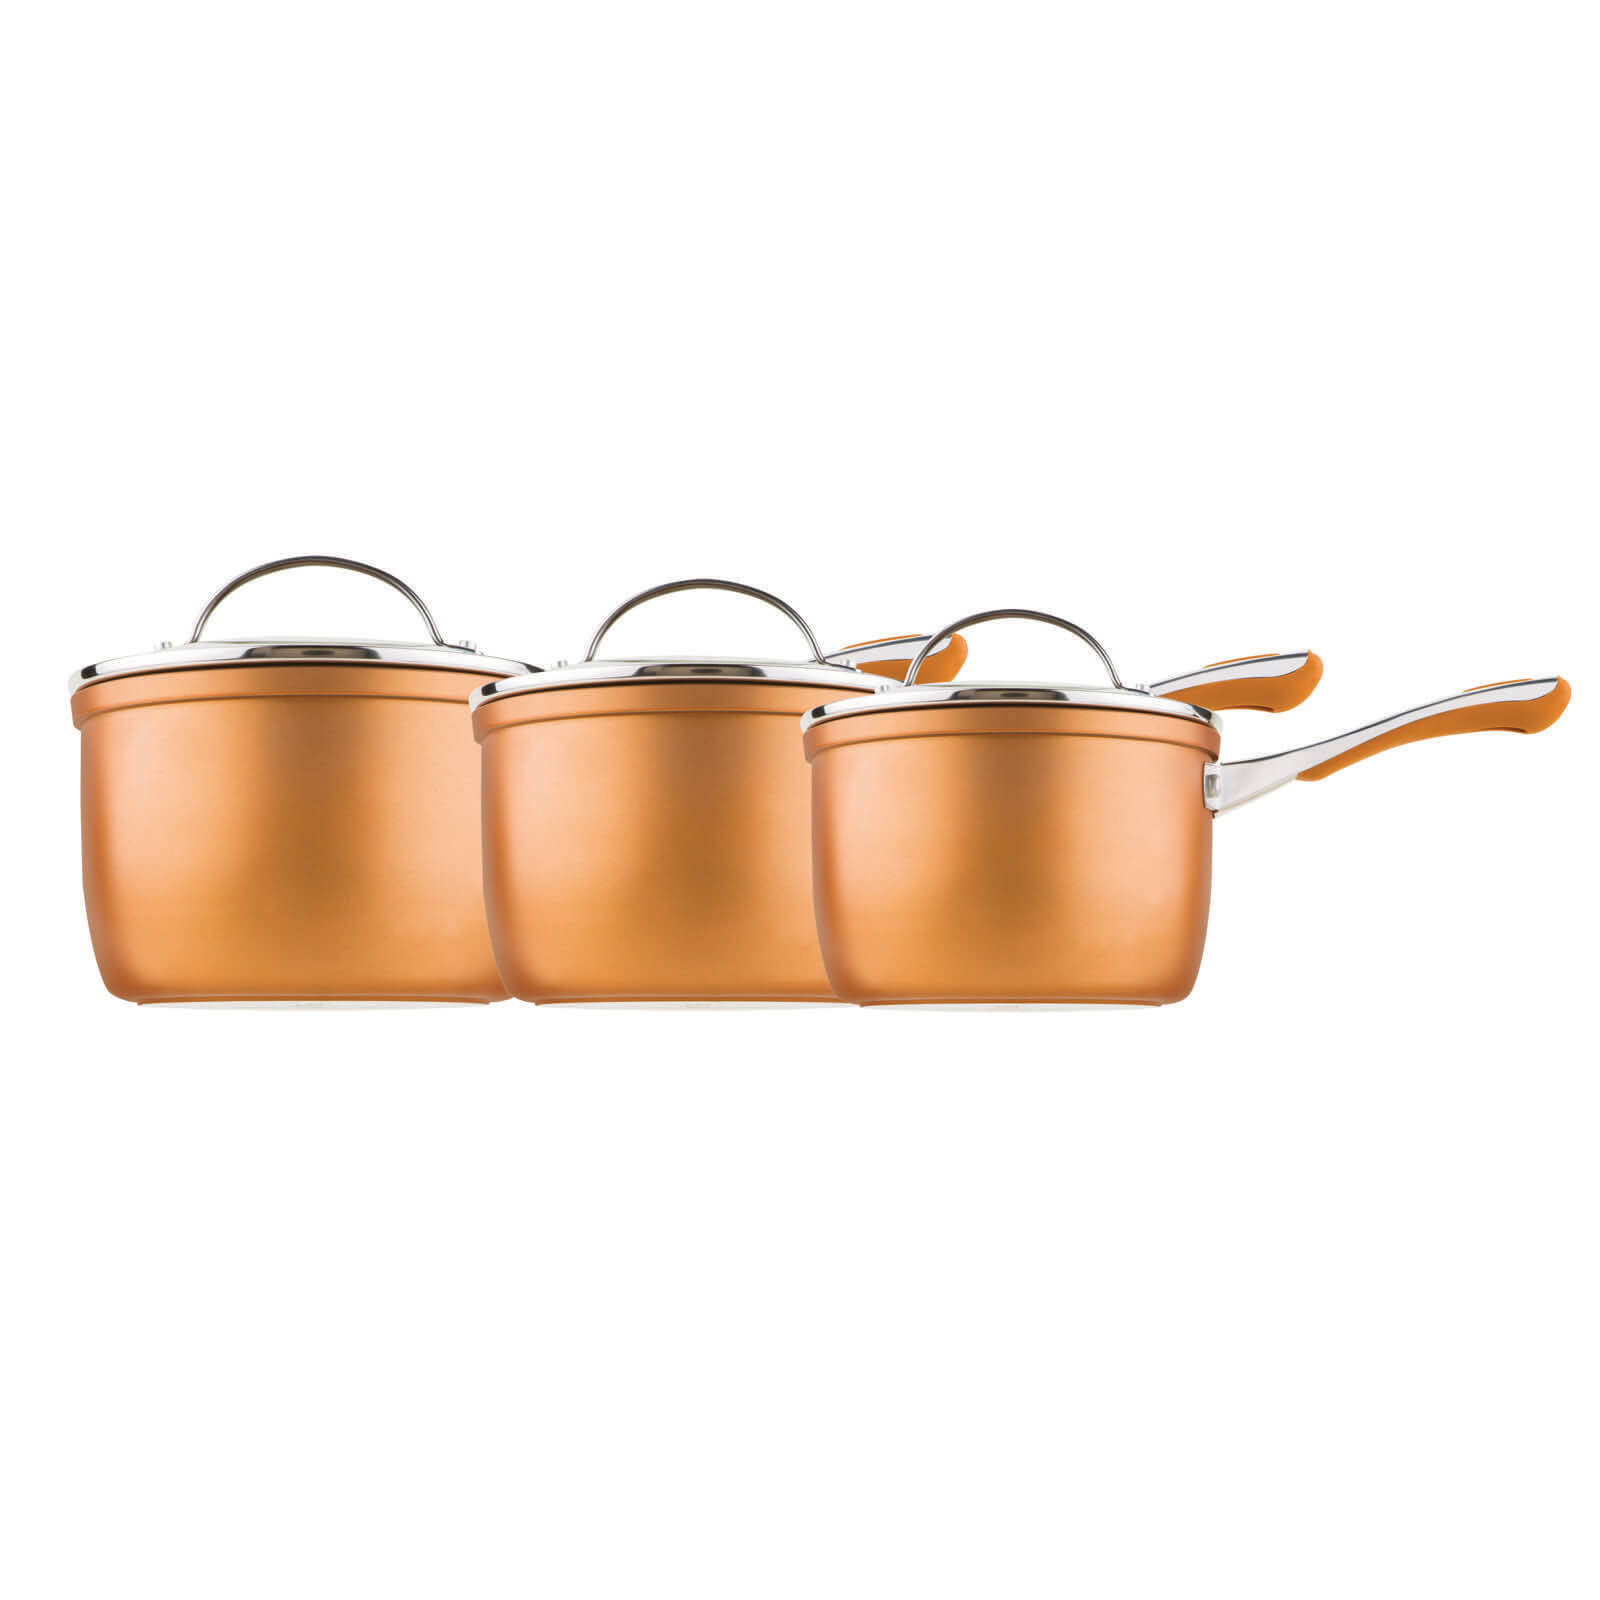 Prestige Prism 3 Piece Saucepan Set (16cm, 18cm and 20cm) - Copper